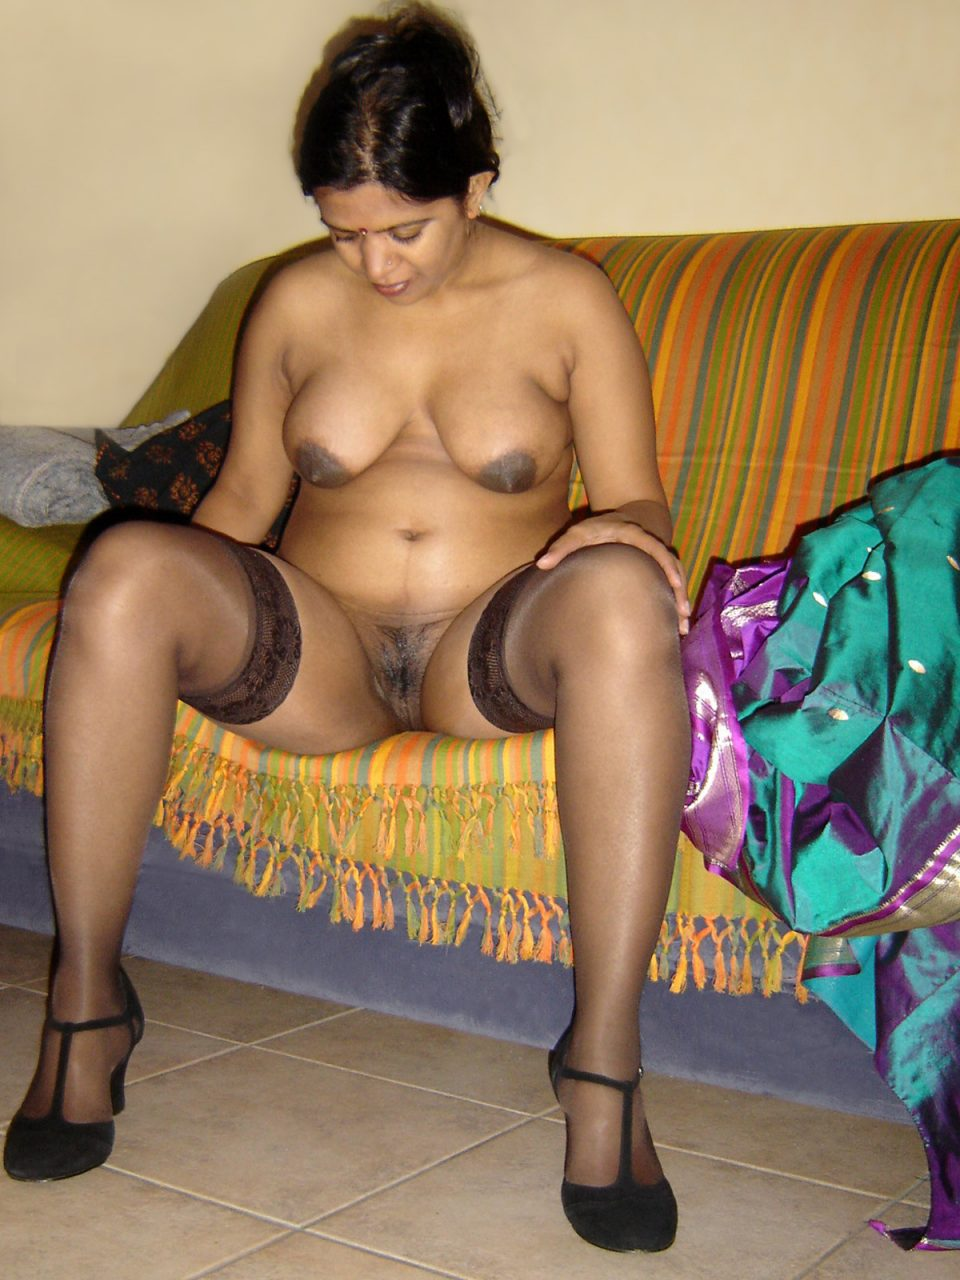 Aunty pussy nude photos good thx